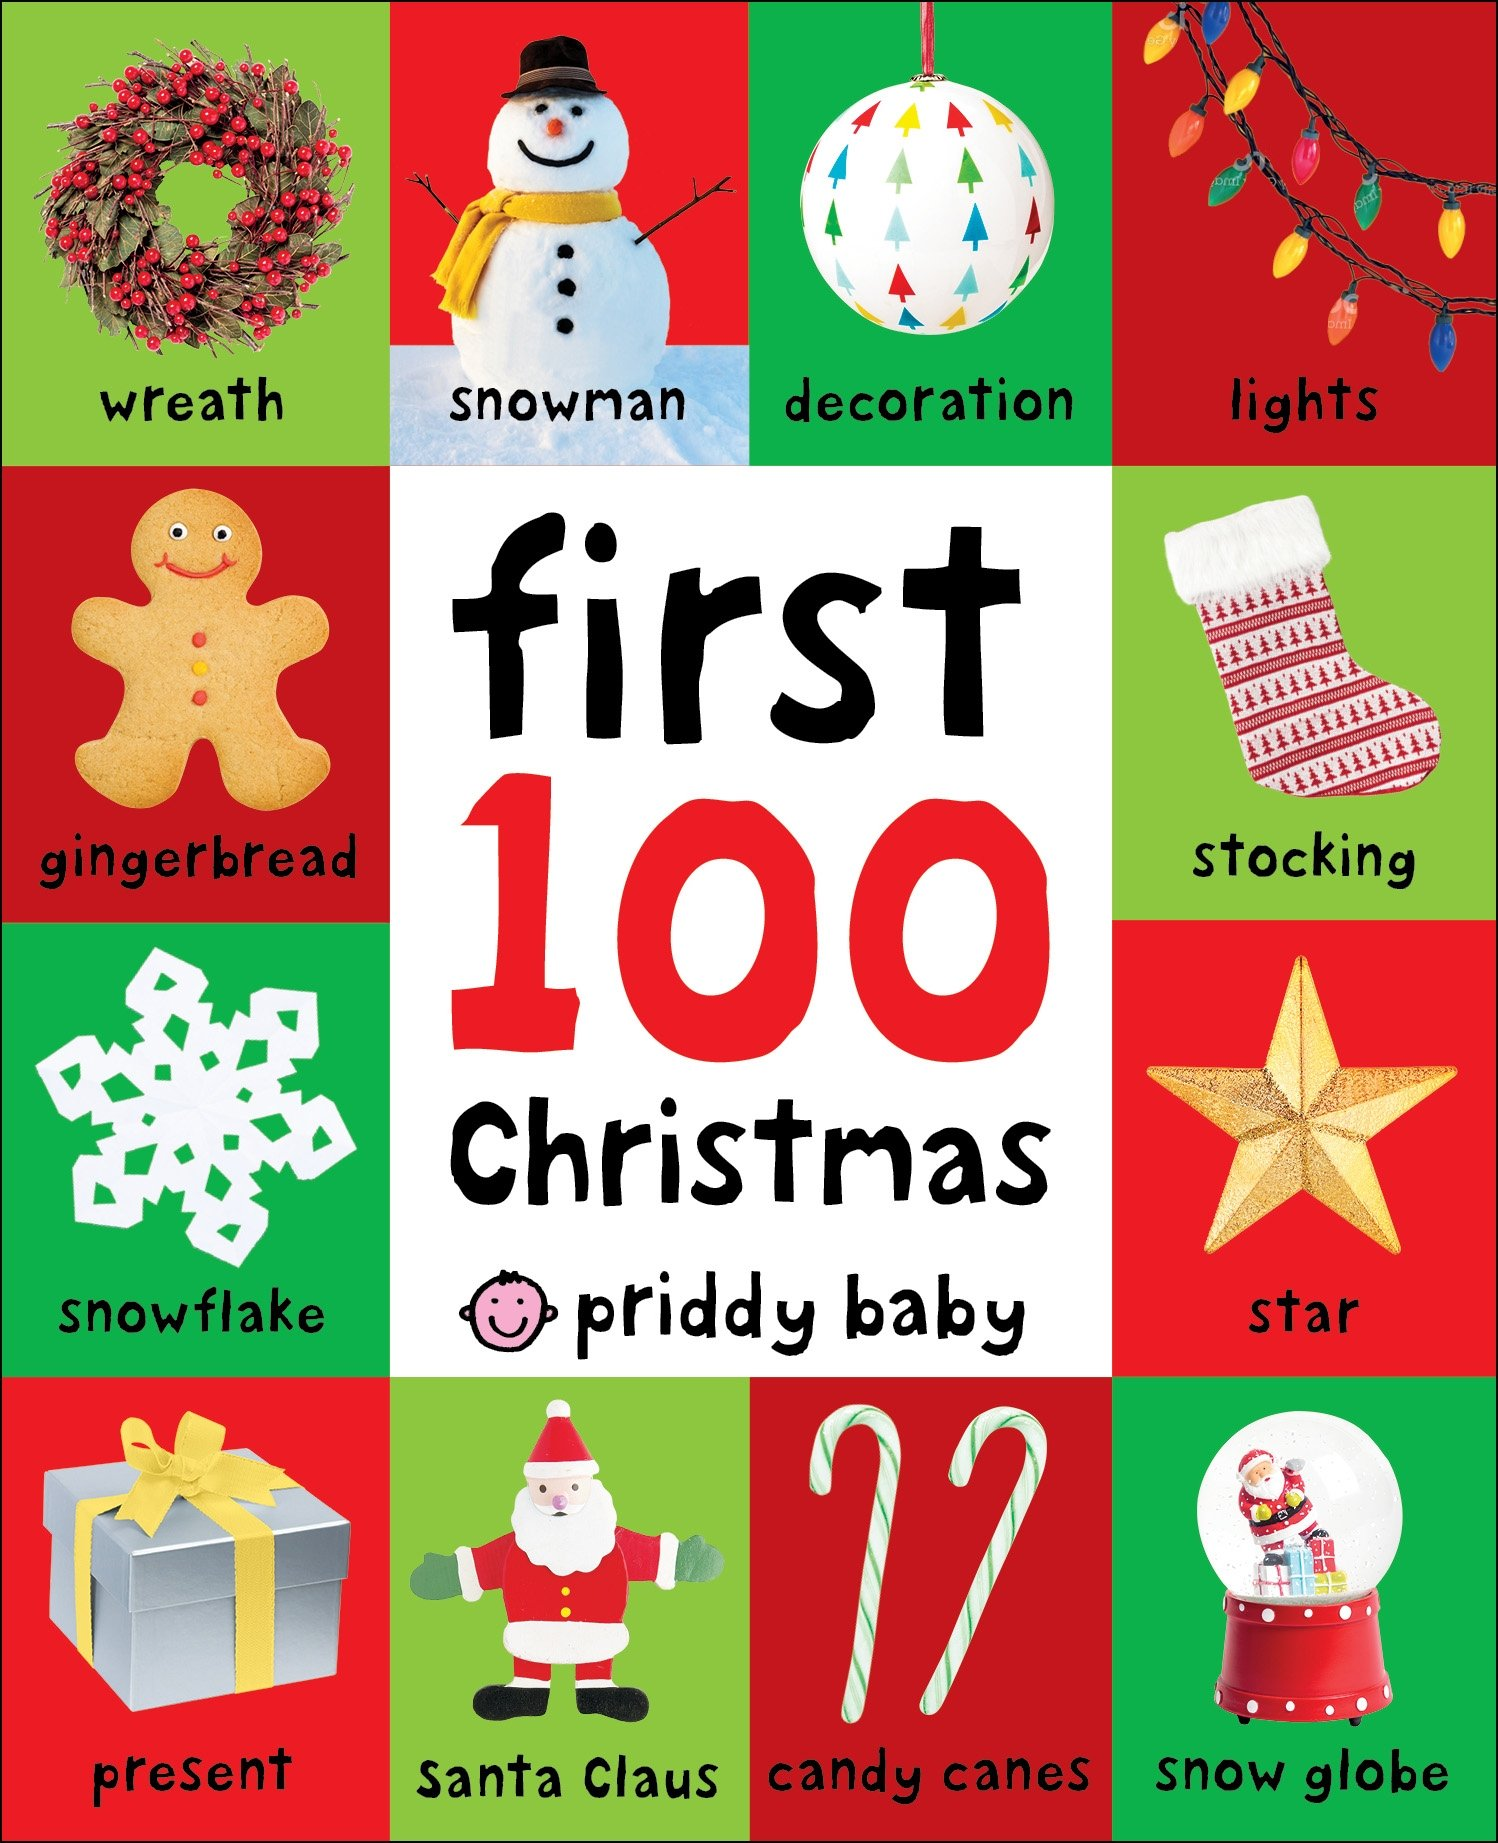 Christmas Words.First 100 Christmas Words Roger Priddy 9780312527686